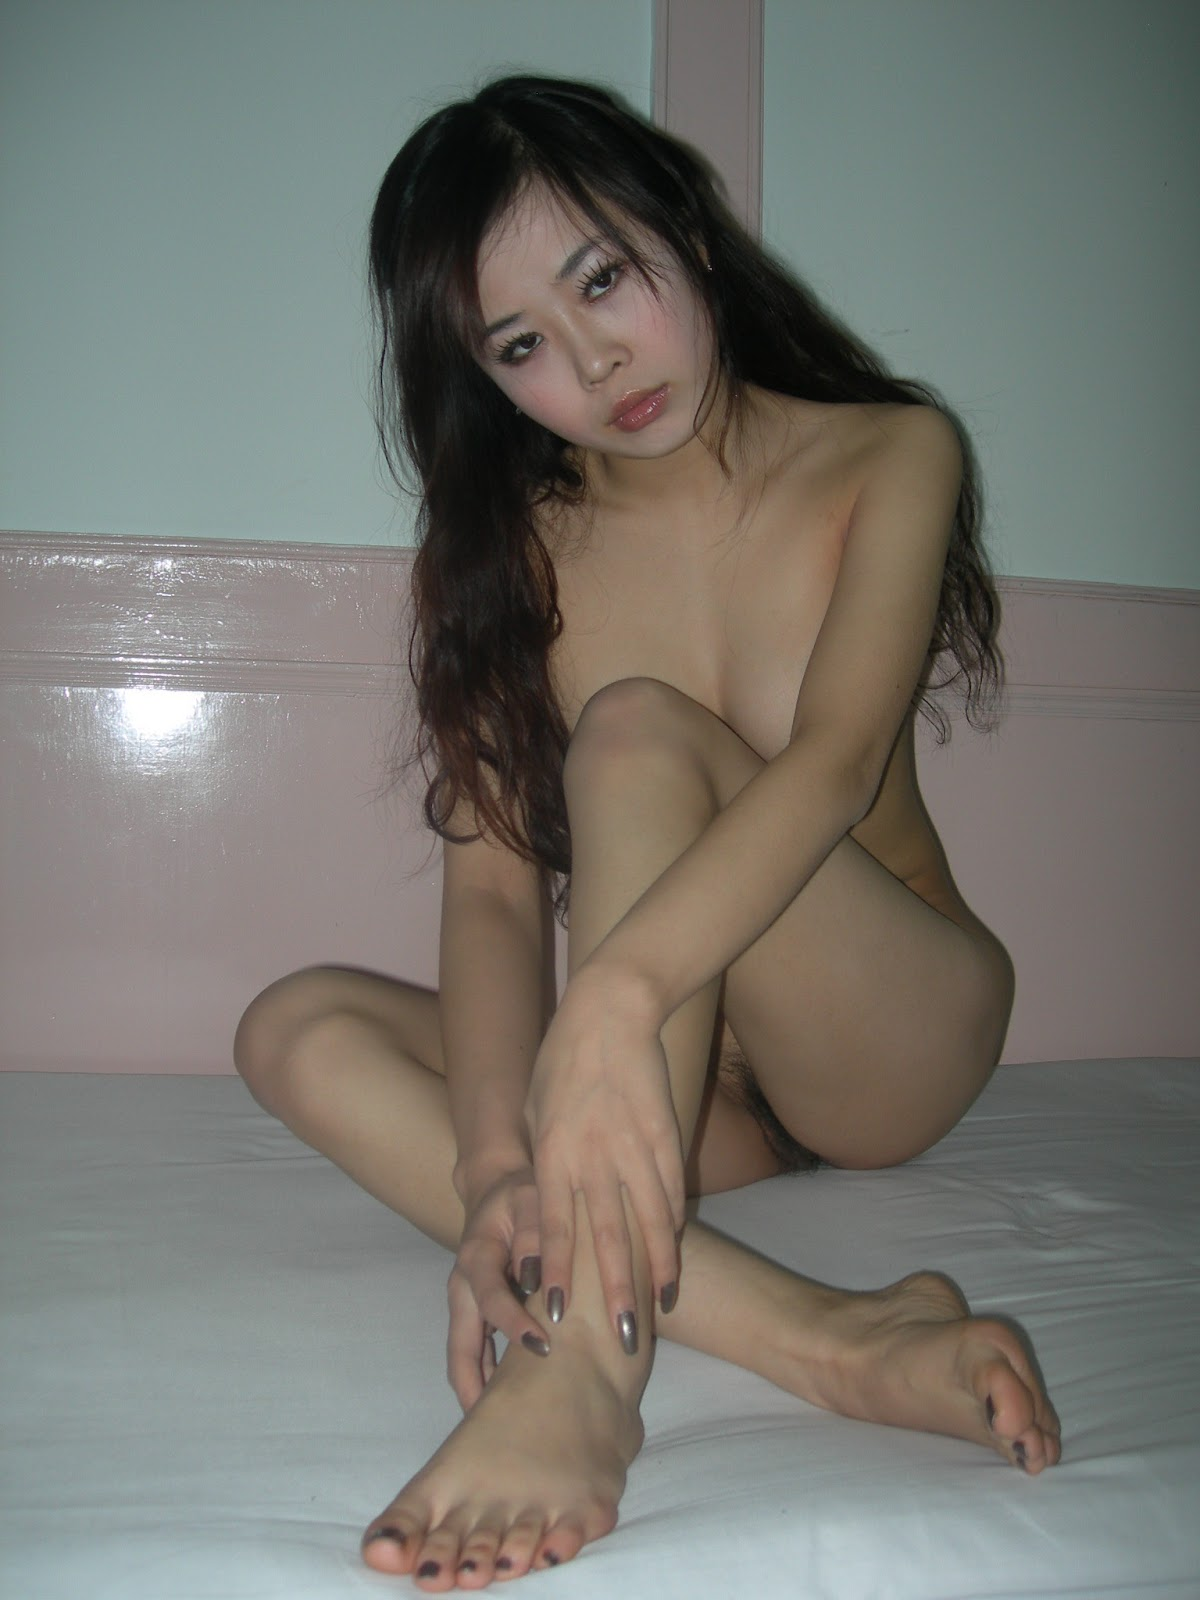 Very Taiwanese artist naked photo